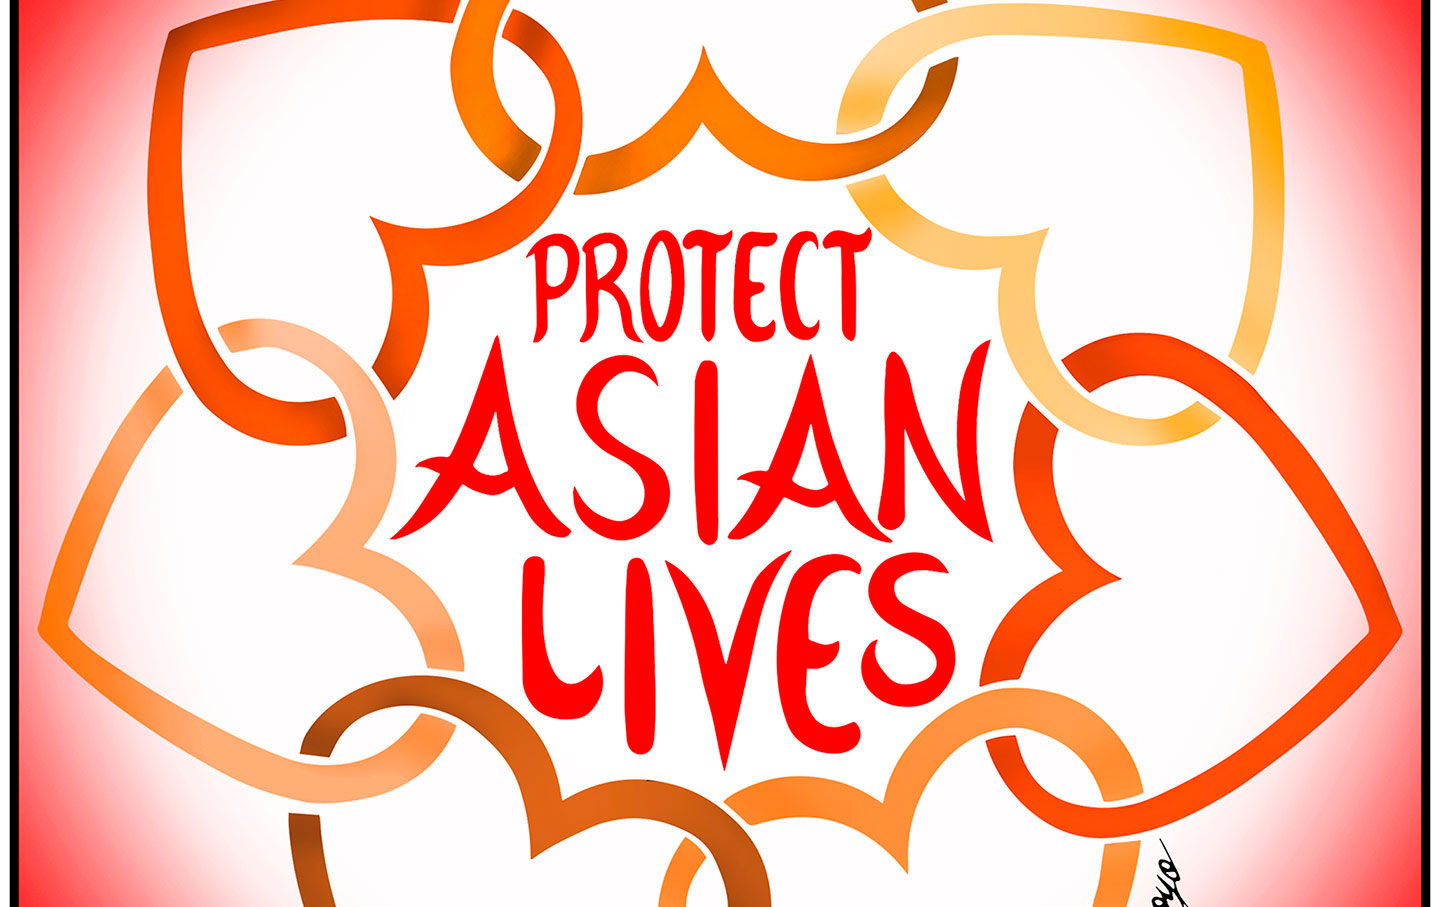 Solidarity With the Asian Community